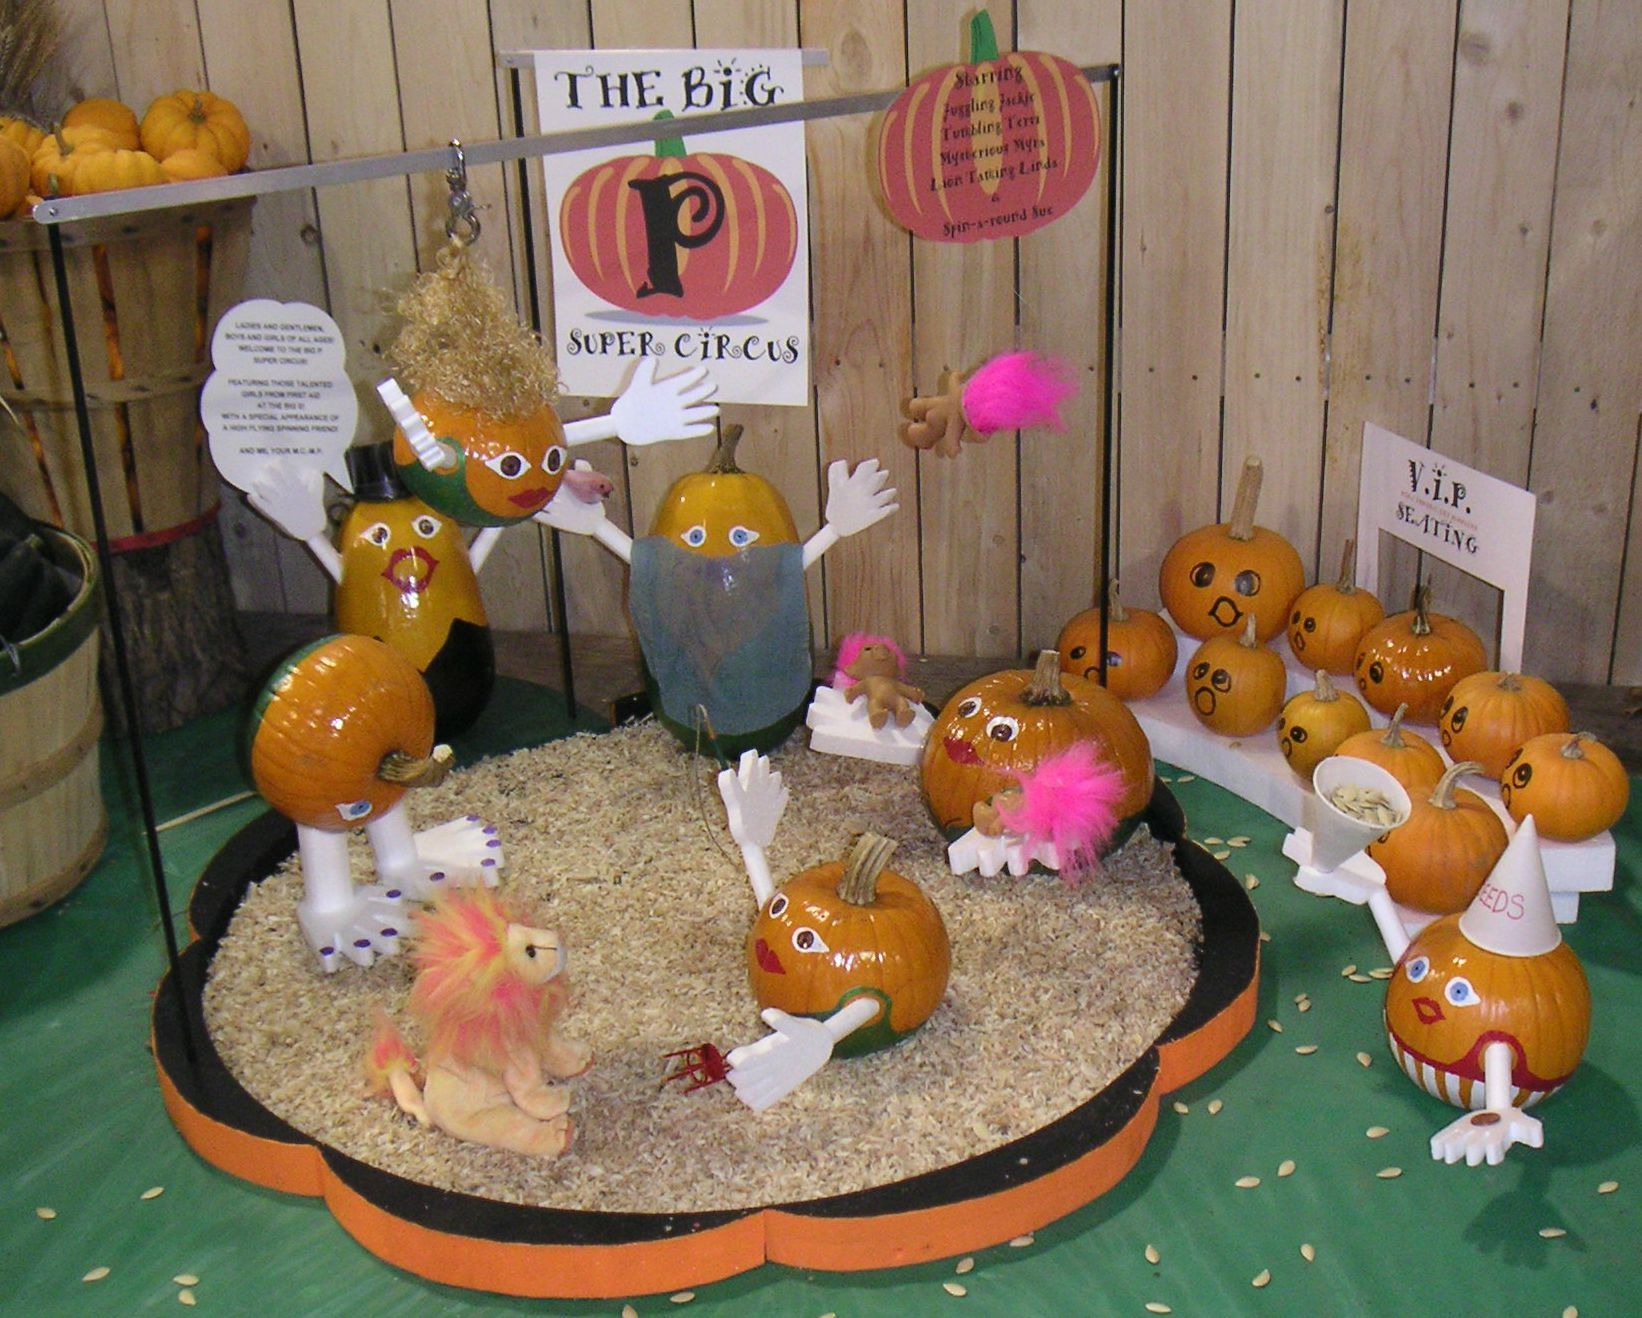 A Pumpkin Circus At The Big E In 2004 By